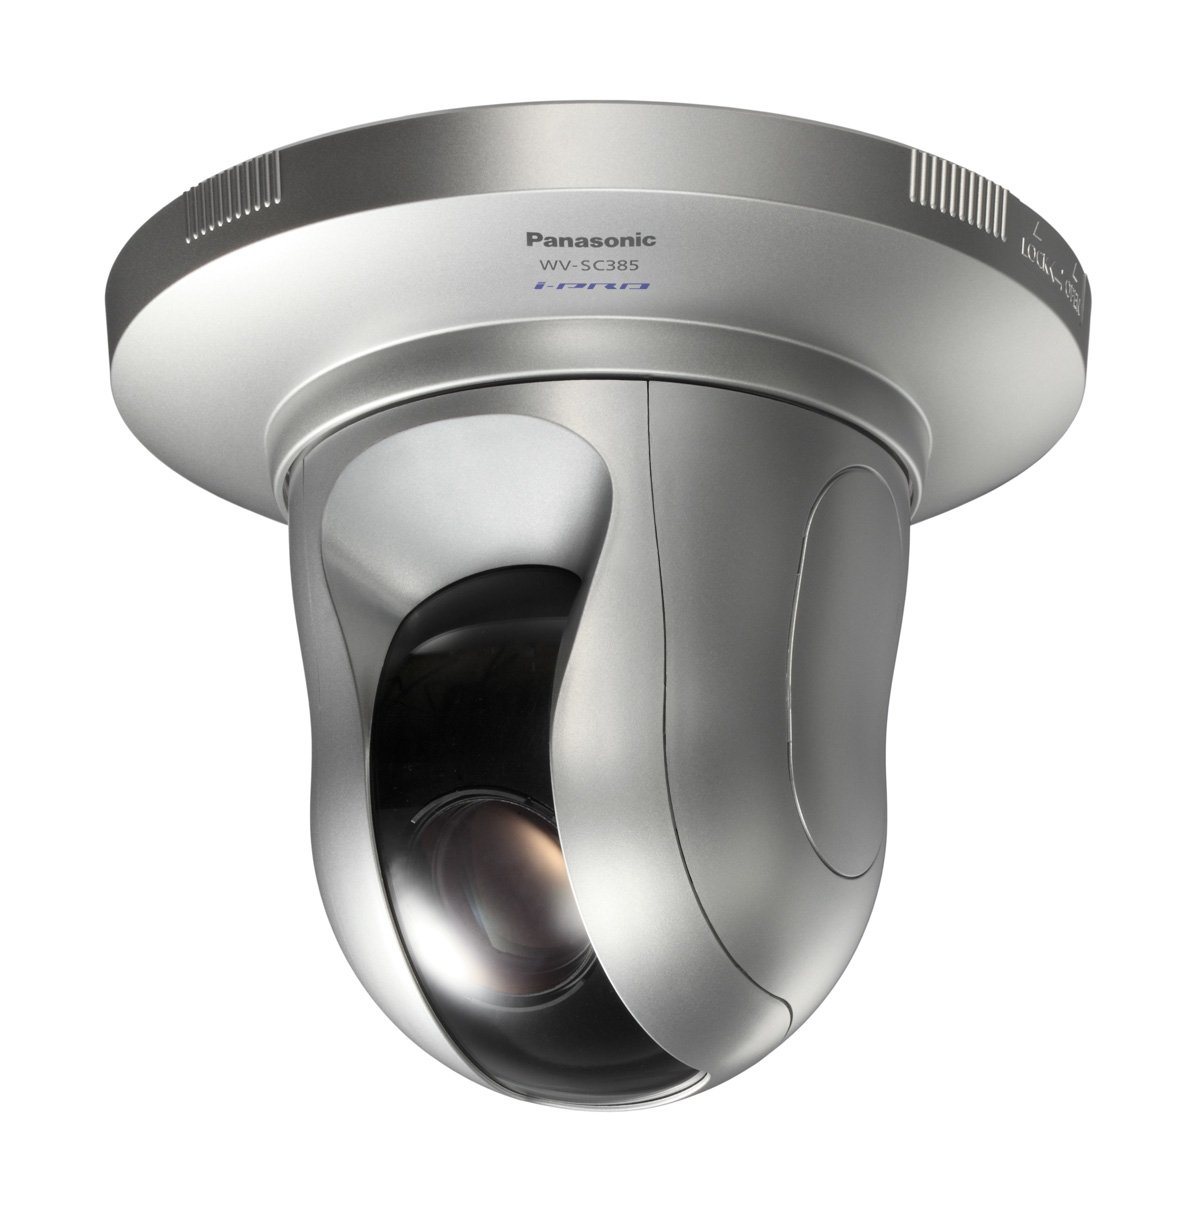 Panasonic WVSC385 Super Dynamic High Definition Dome Network Camera